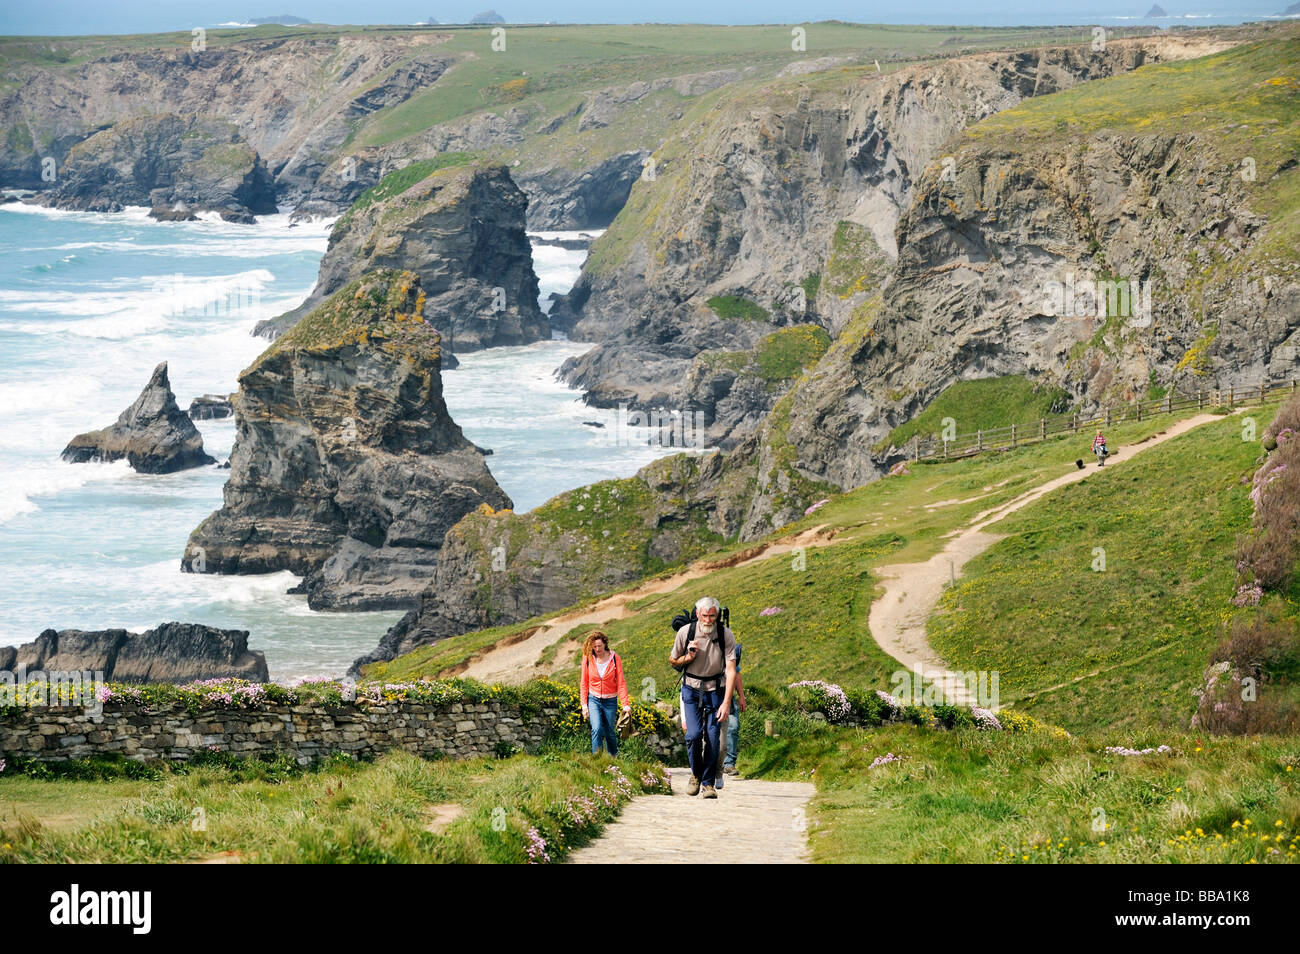 Coast walkers on the South West Coast Path north of Newquay, Cornwall. Backdrop of the sea stacks and cliffs of - Stock Image